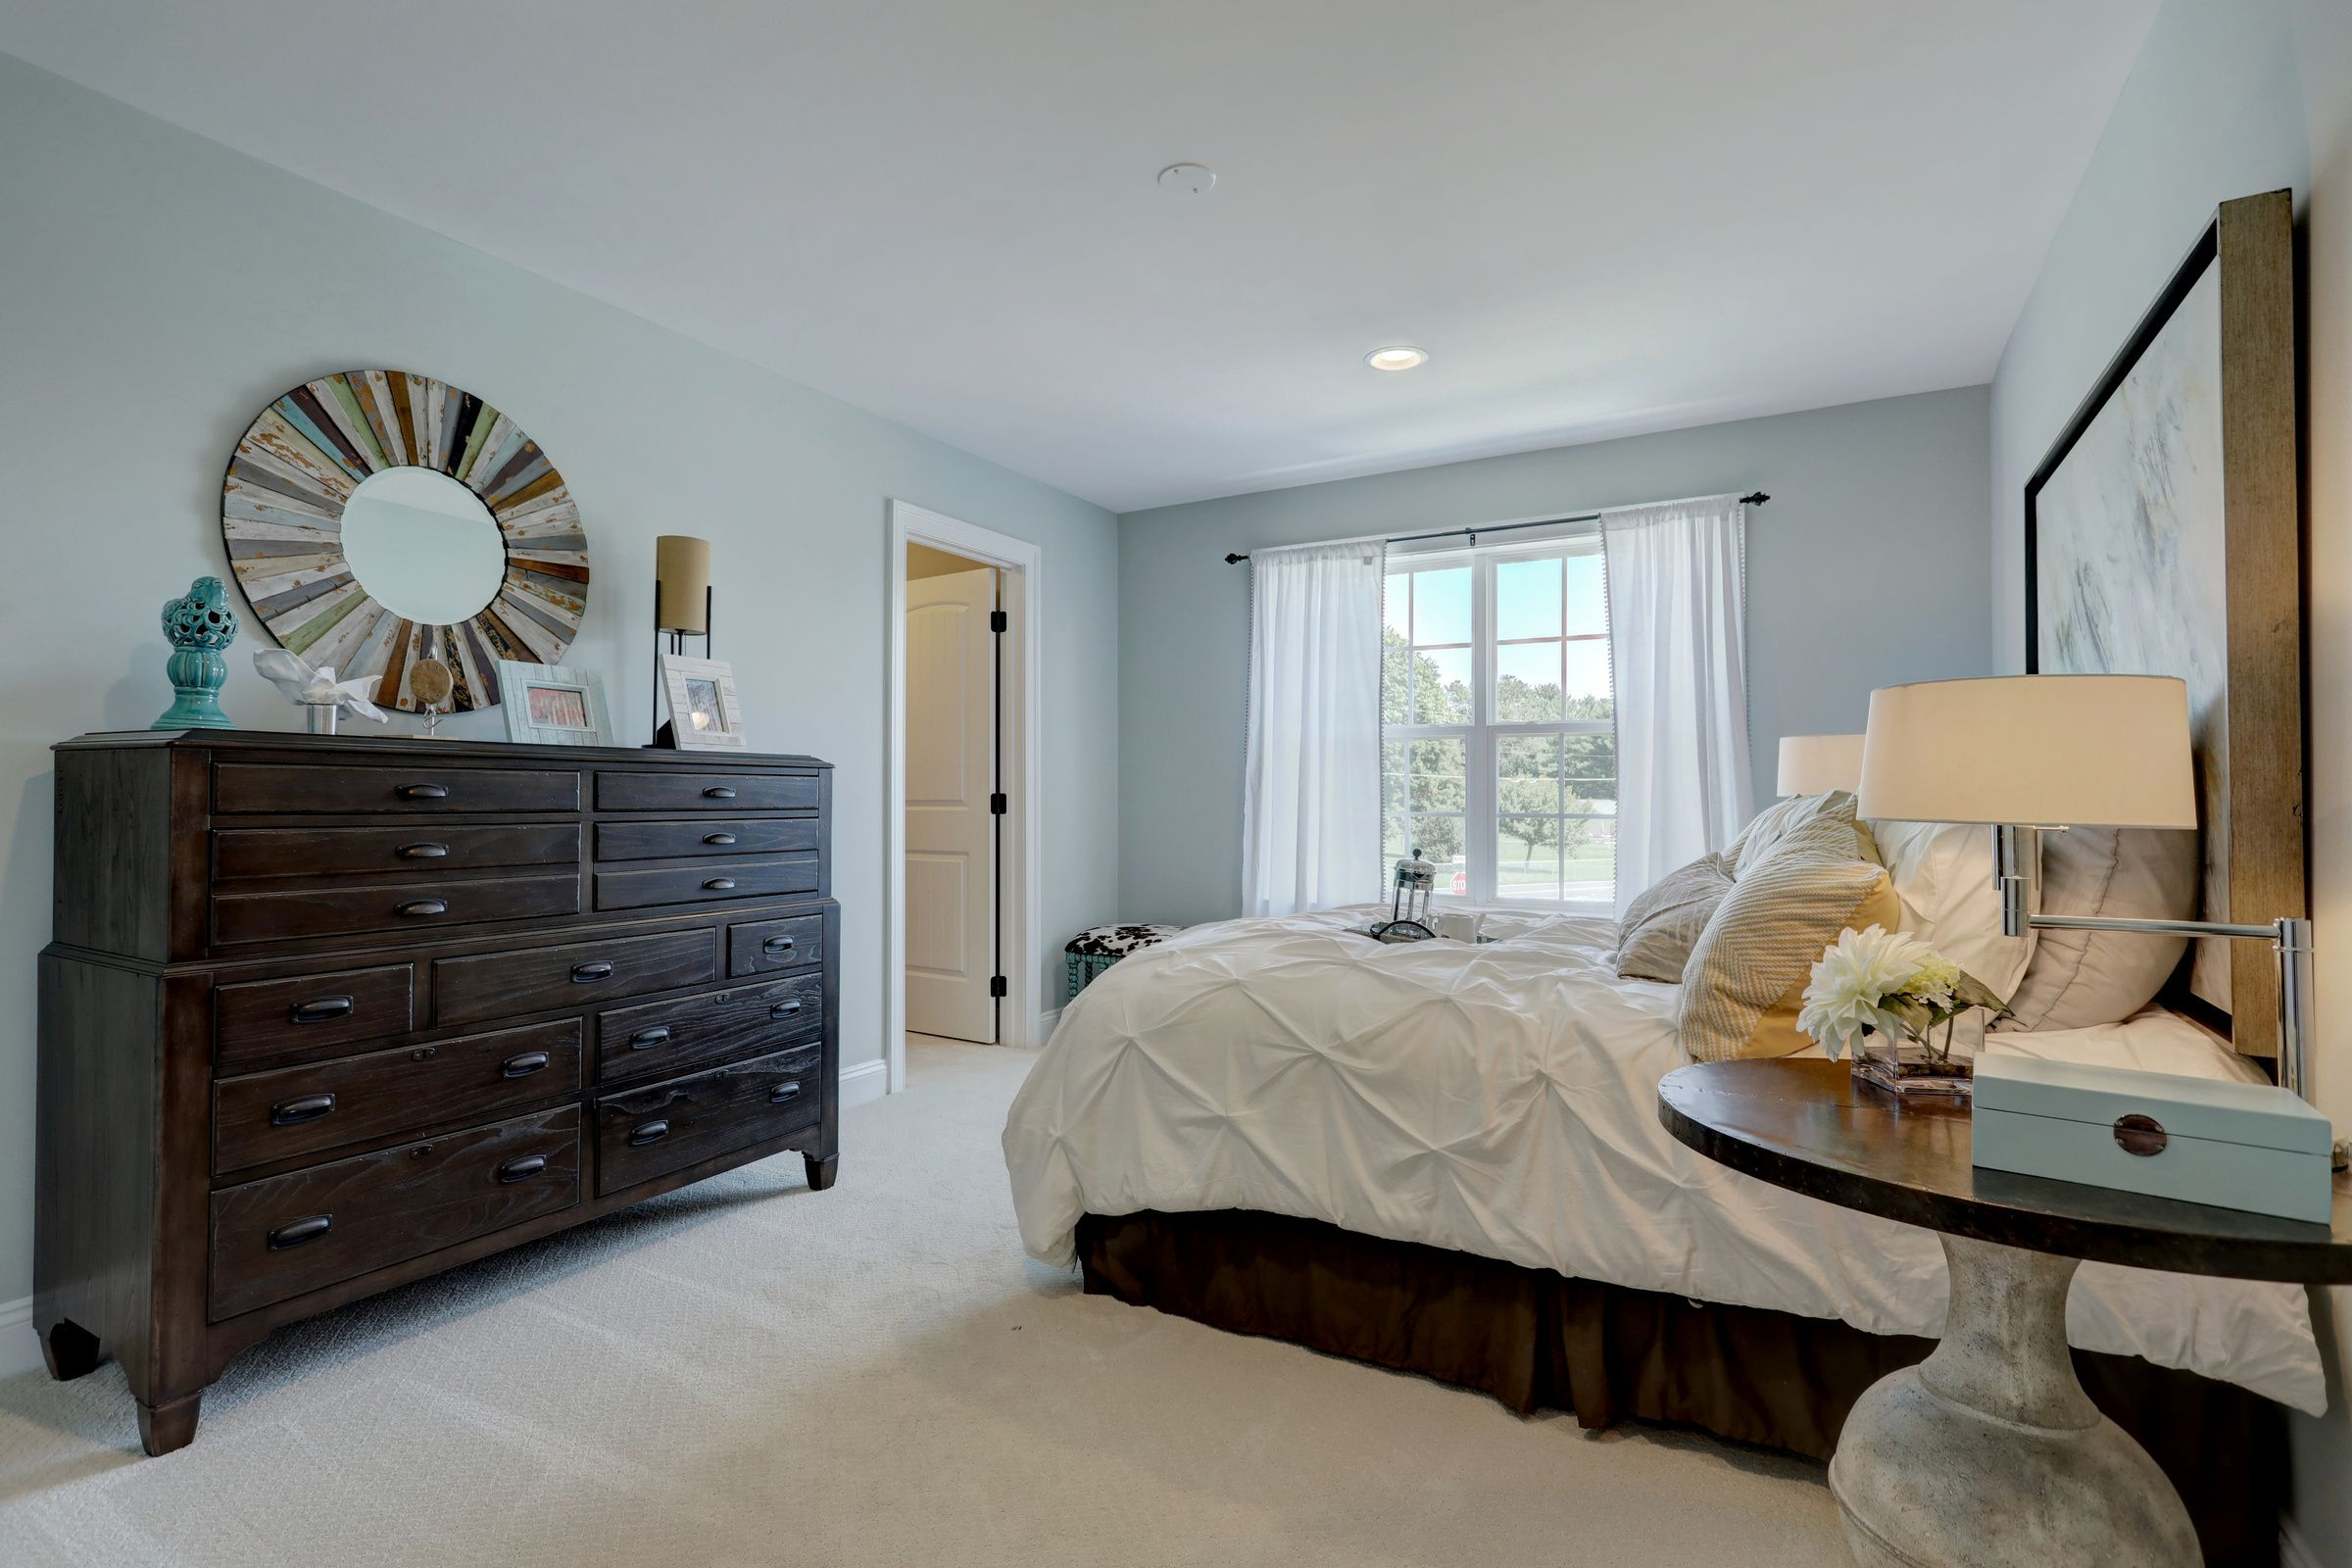 Bedroom featured in the Ethan Bordeaux By Keystone Custom Homes in Washington, MD